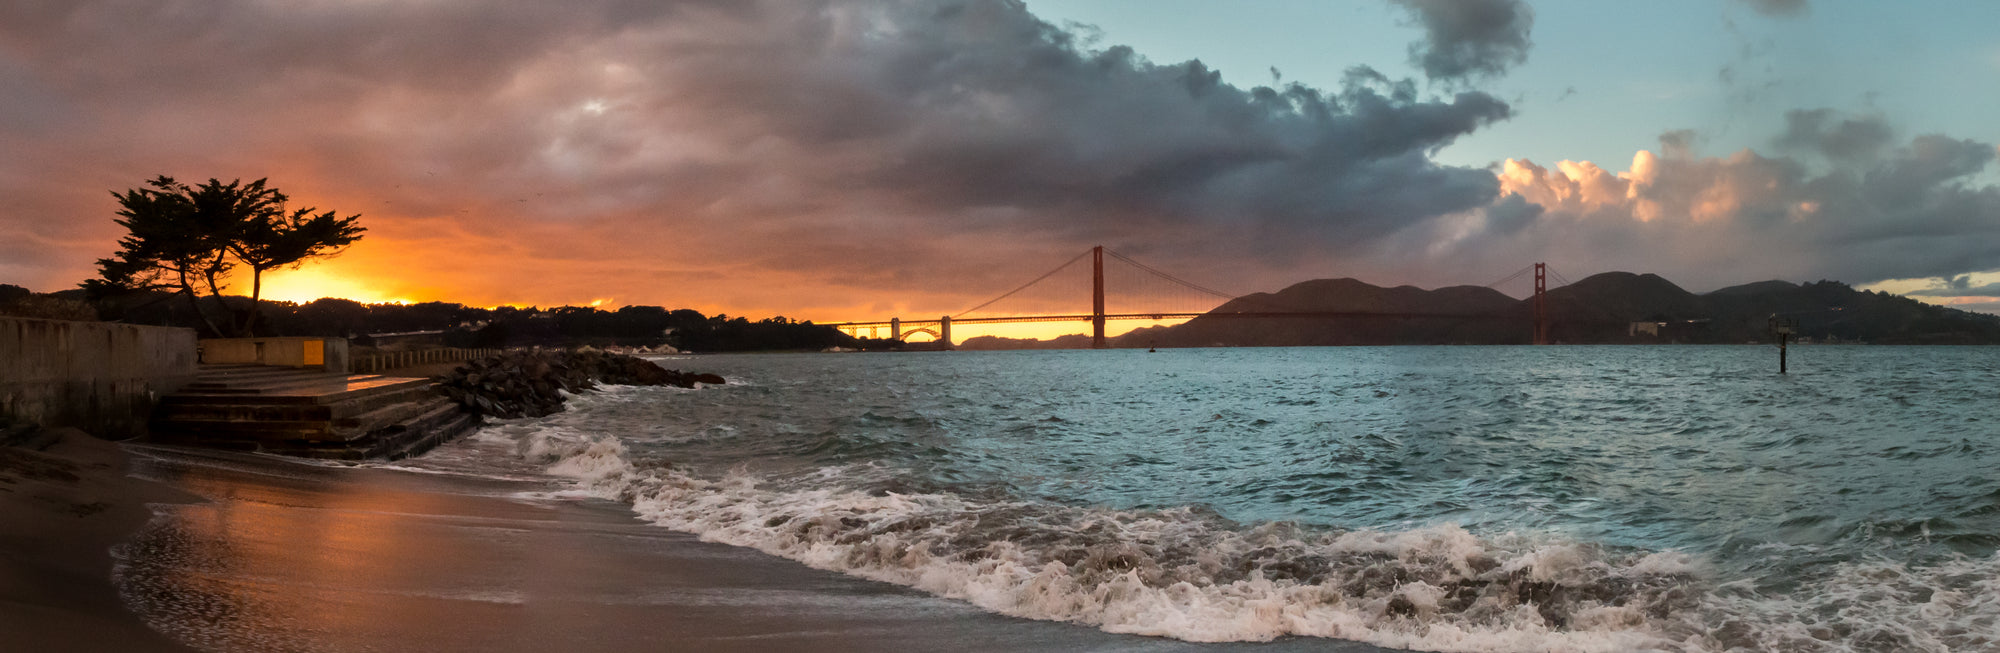 Sunset at Golden Gate 1 (0077)